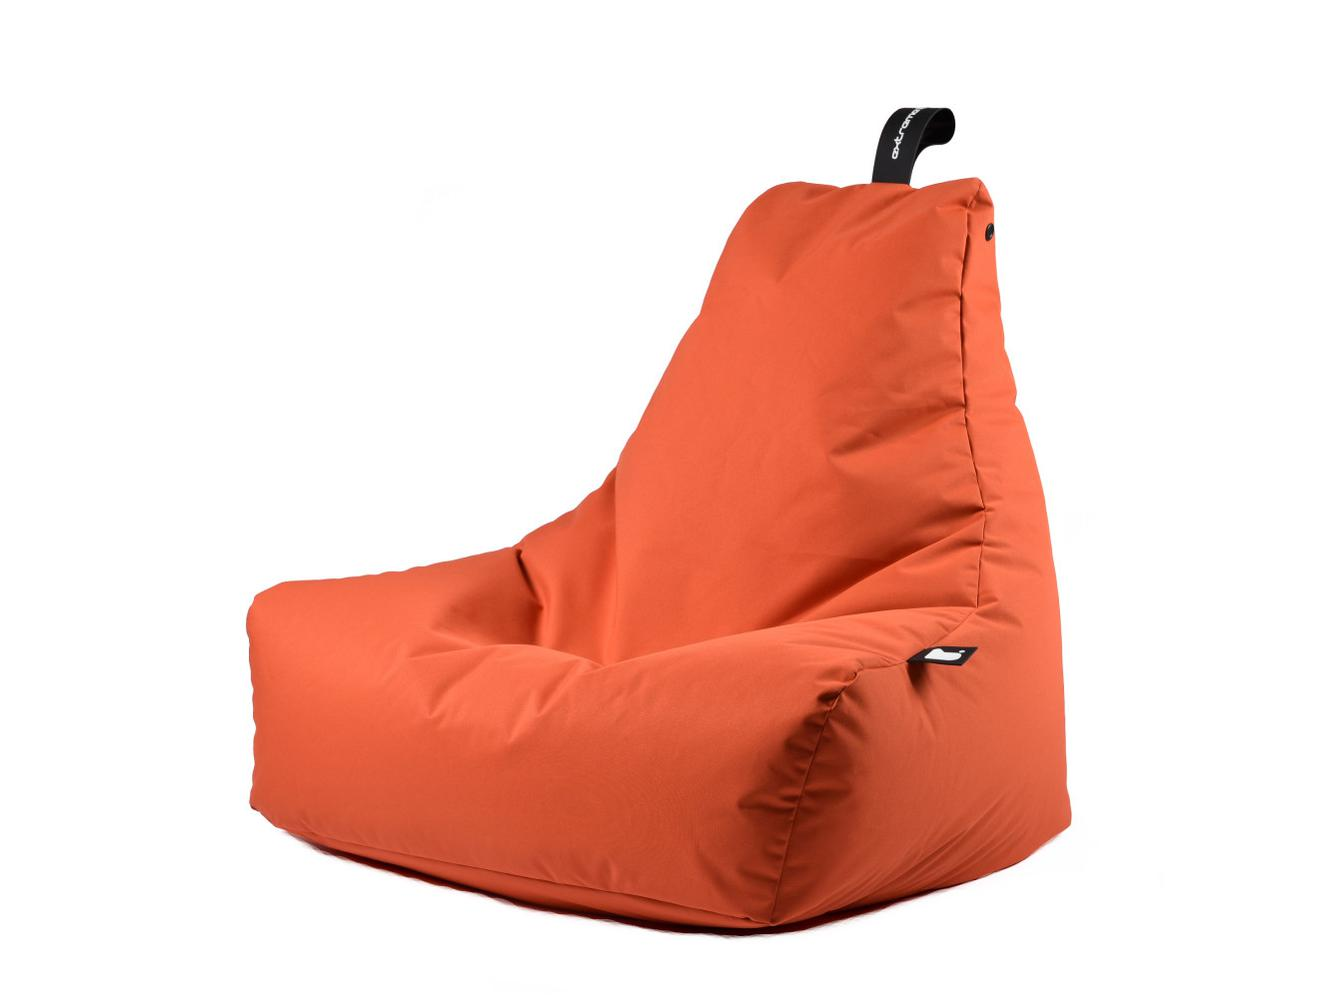 Zitzak Extreme Lounging b-bag mighty-b Outdoor Oranje 1